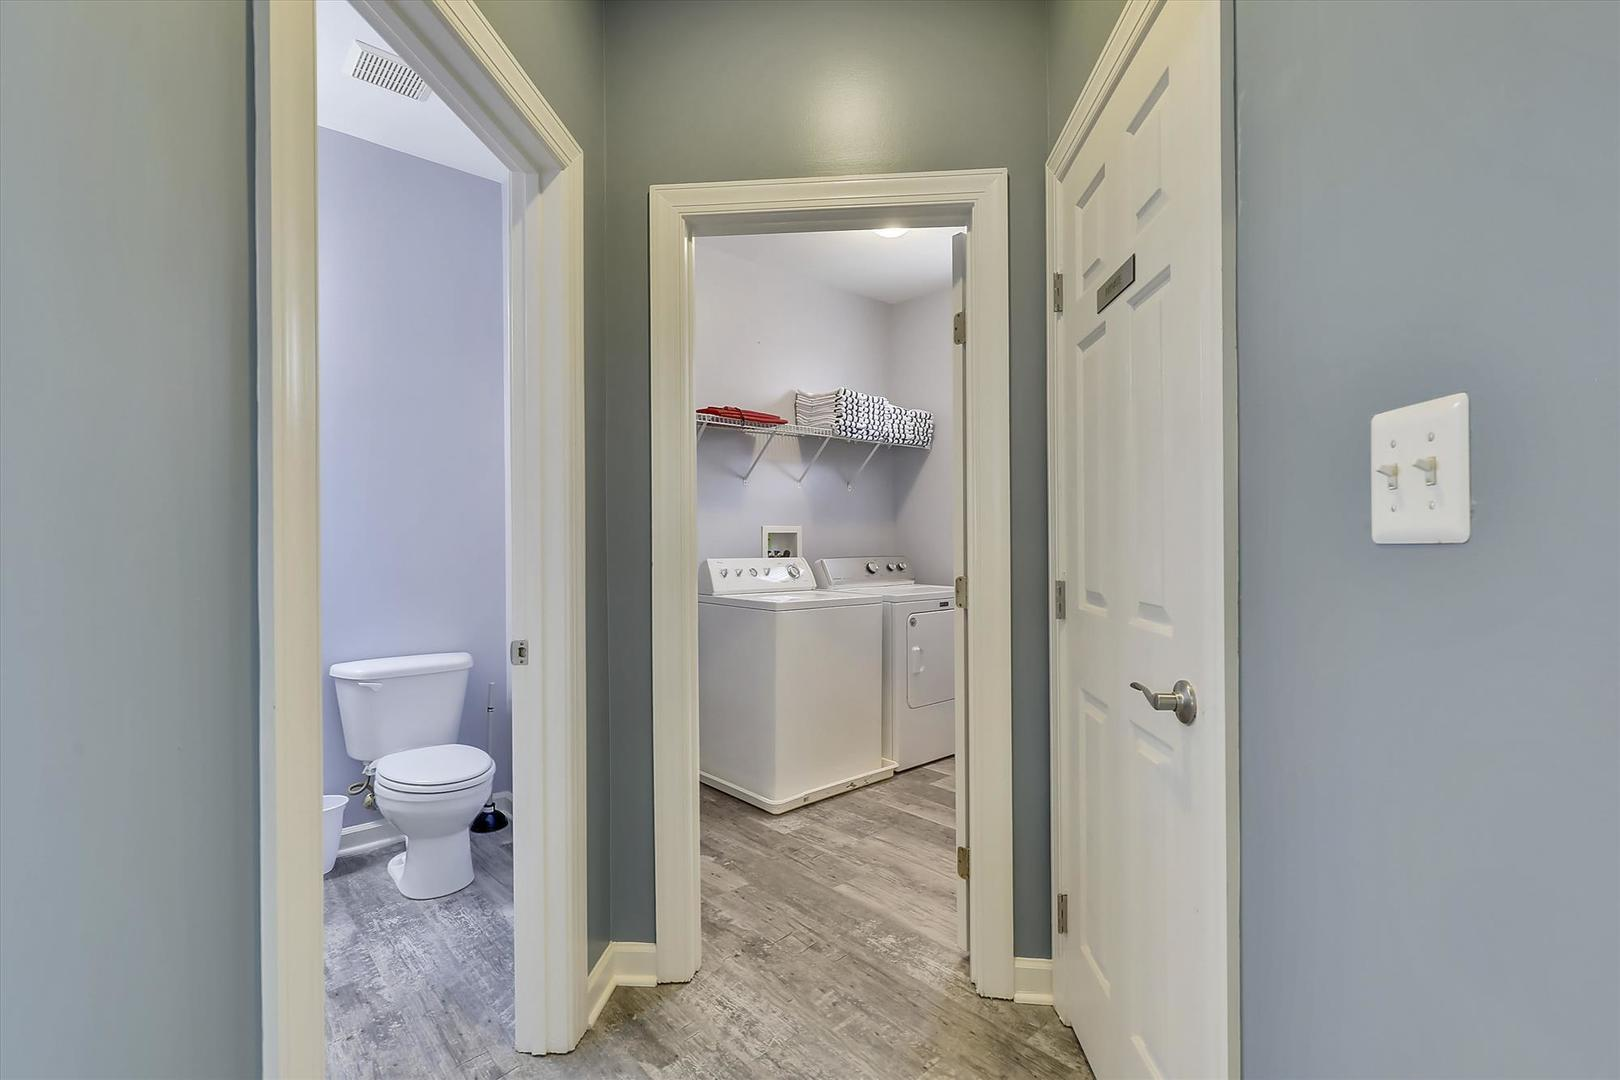 28 Seaside Dr. - Powder Room & Laundry Area